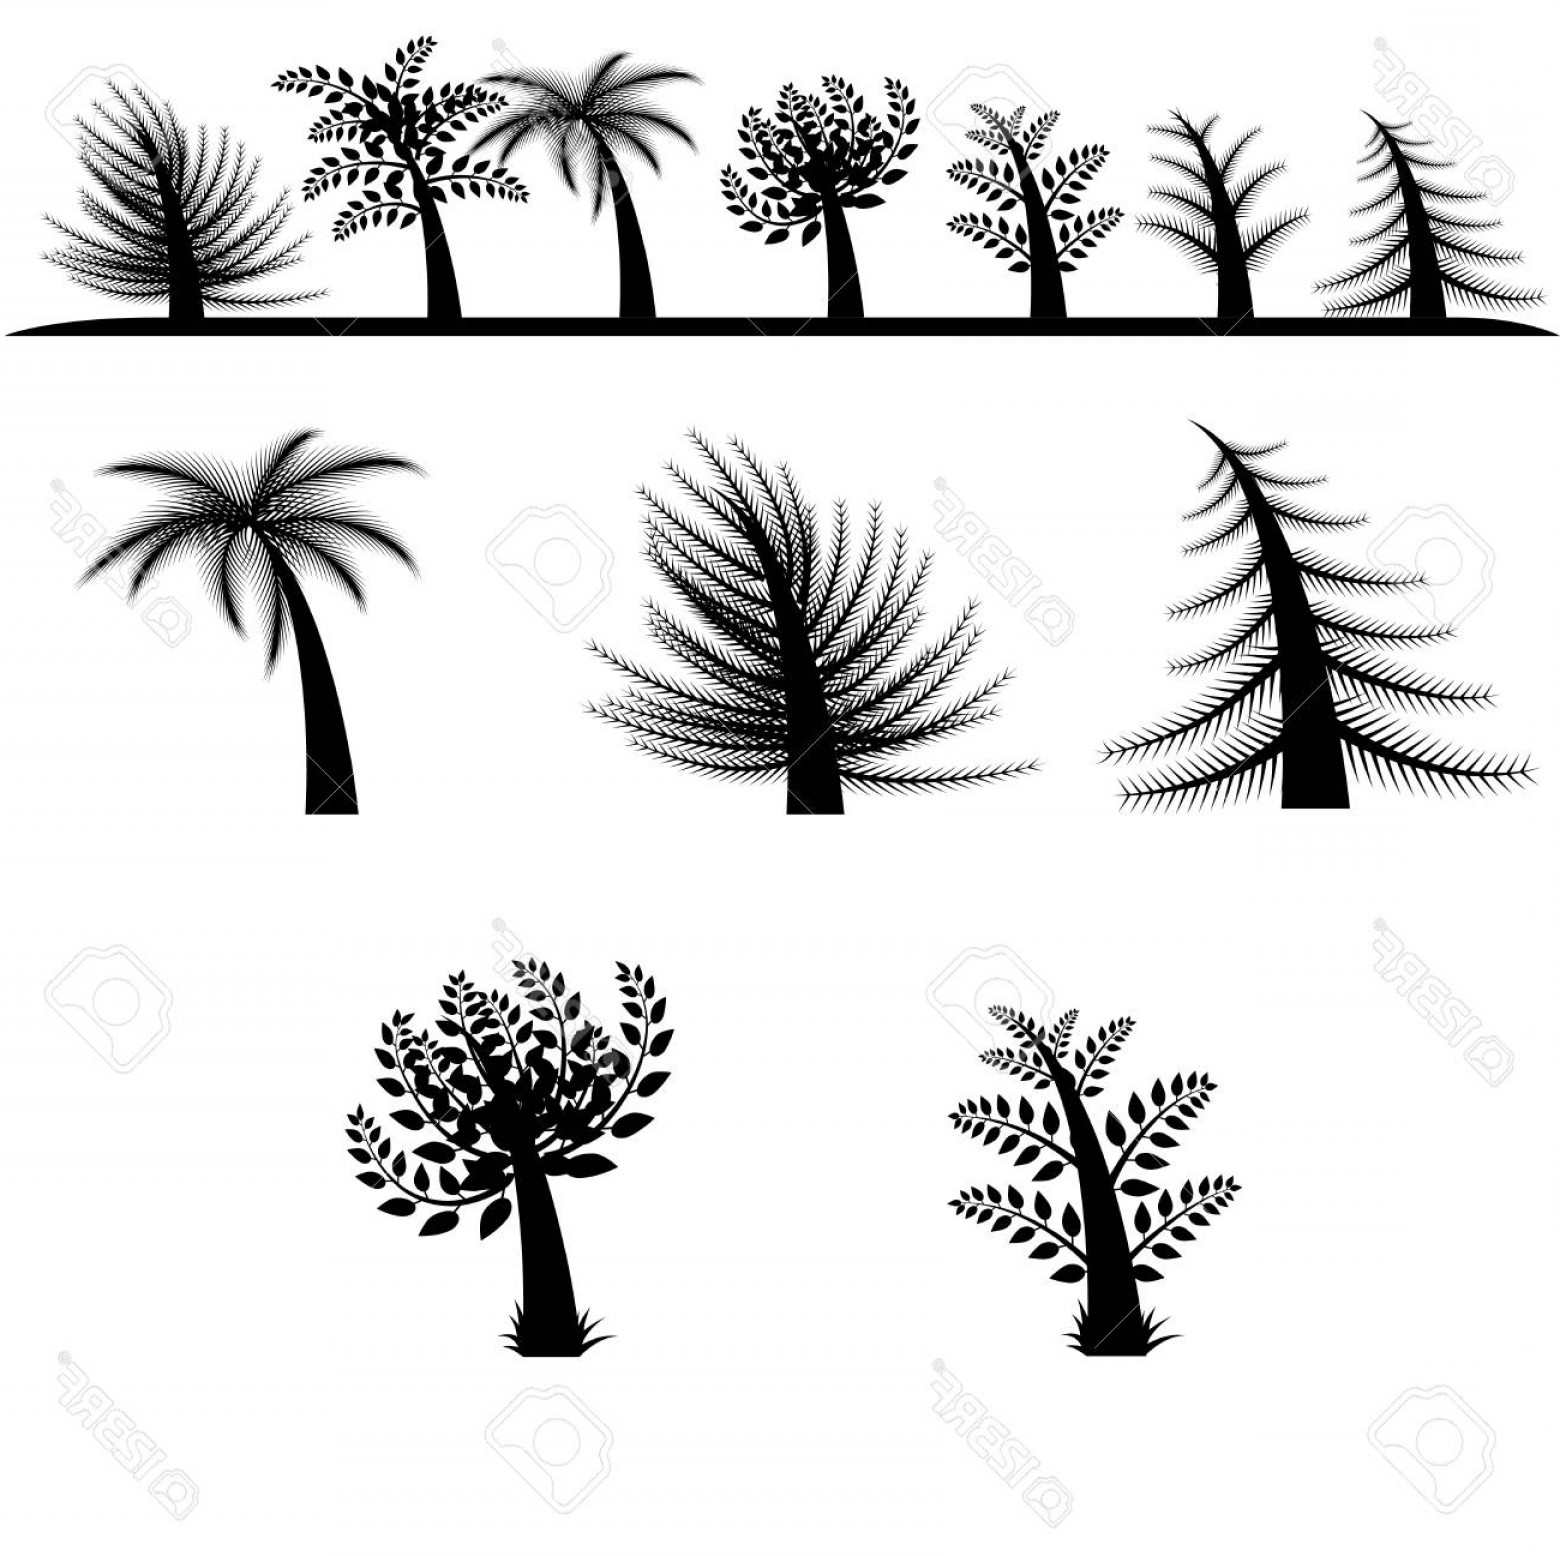 Contoon Free Black Vector Tree: Photostock Vector Collection Of Cartoon Style Vector Tree Silhouettes